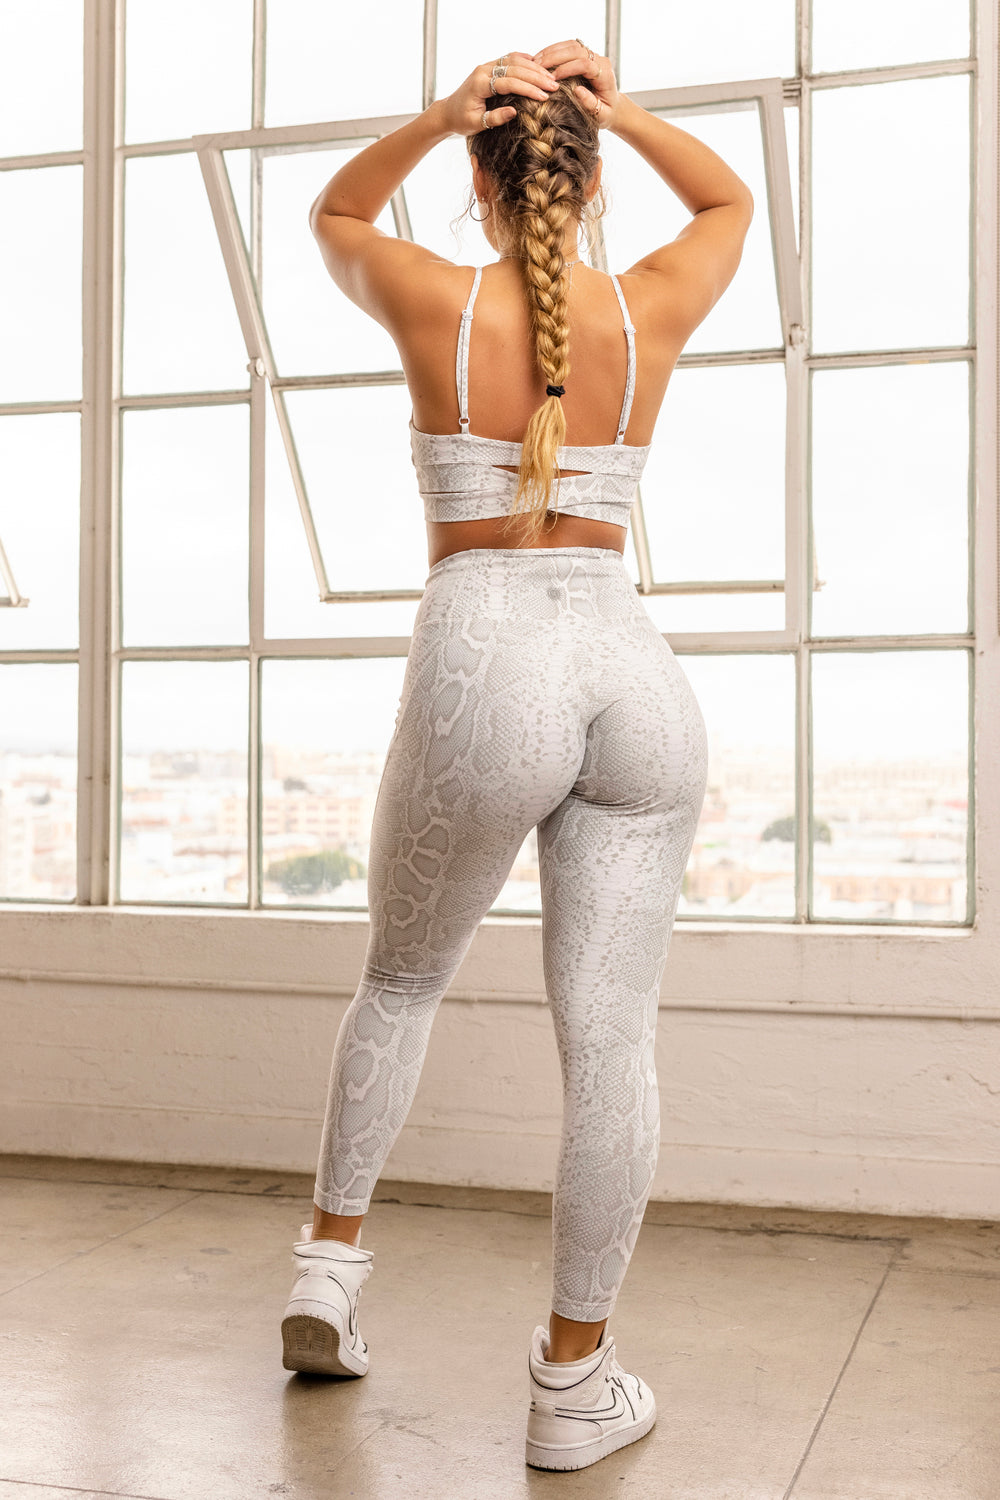 Sommer Ray Snake Skin Printed High-Rise Butt Lift Active Legging Multi